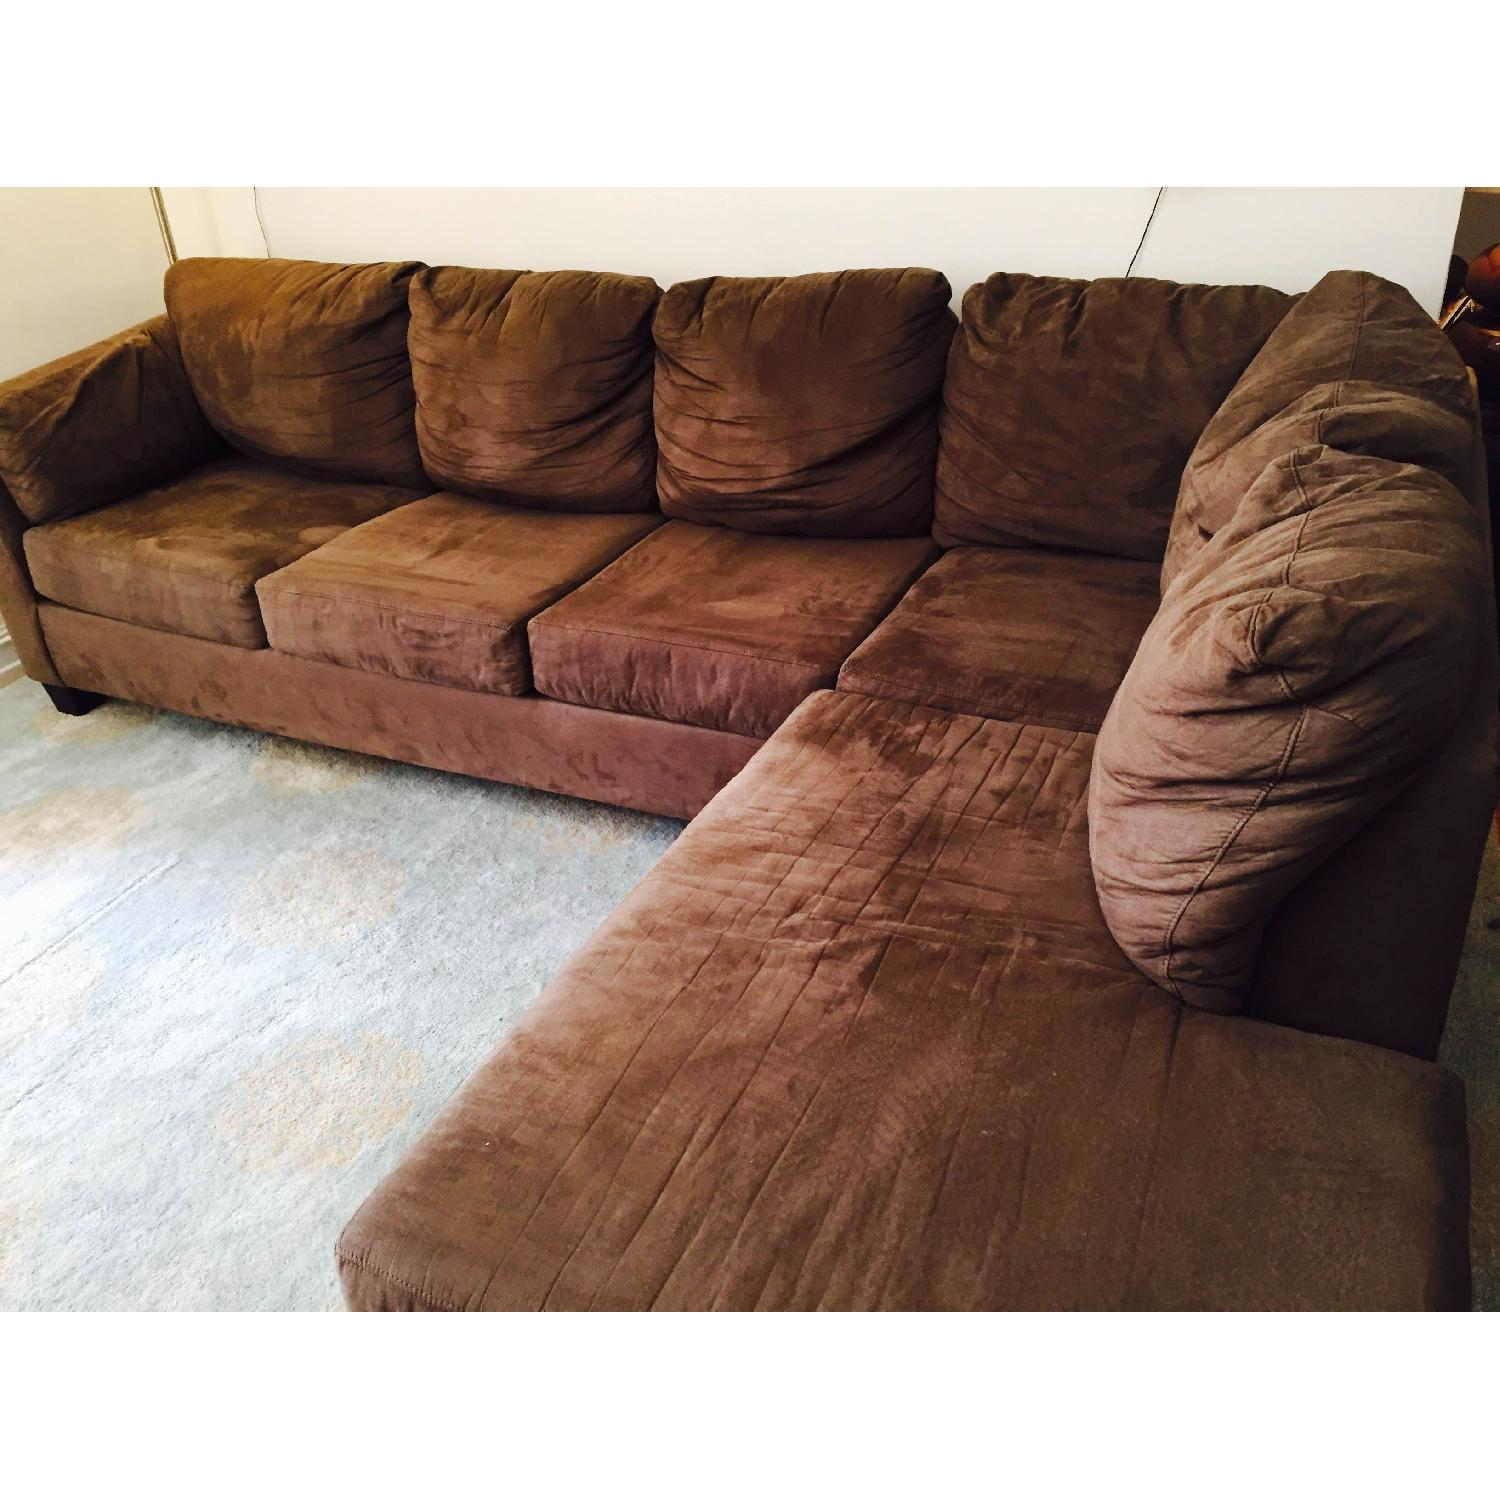 Bob's Sleeper Sectional Sofa - image-1